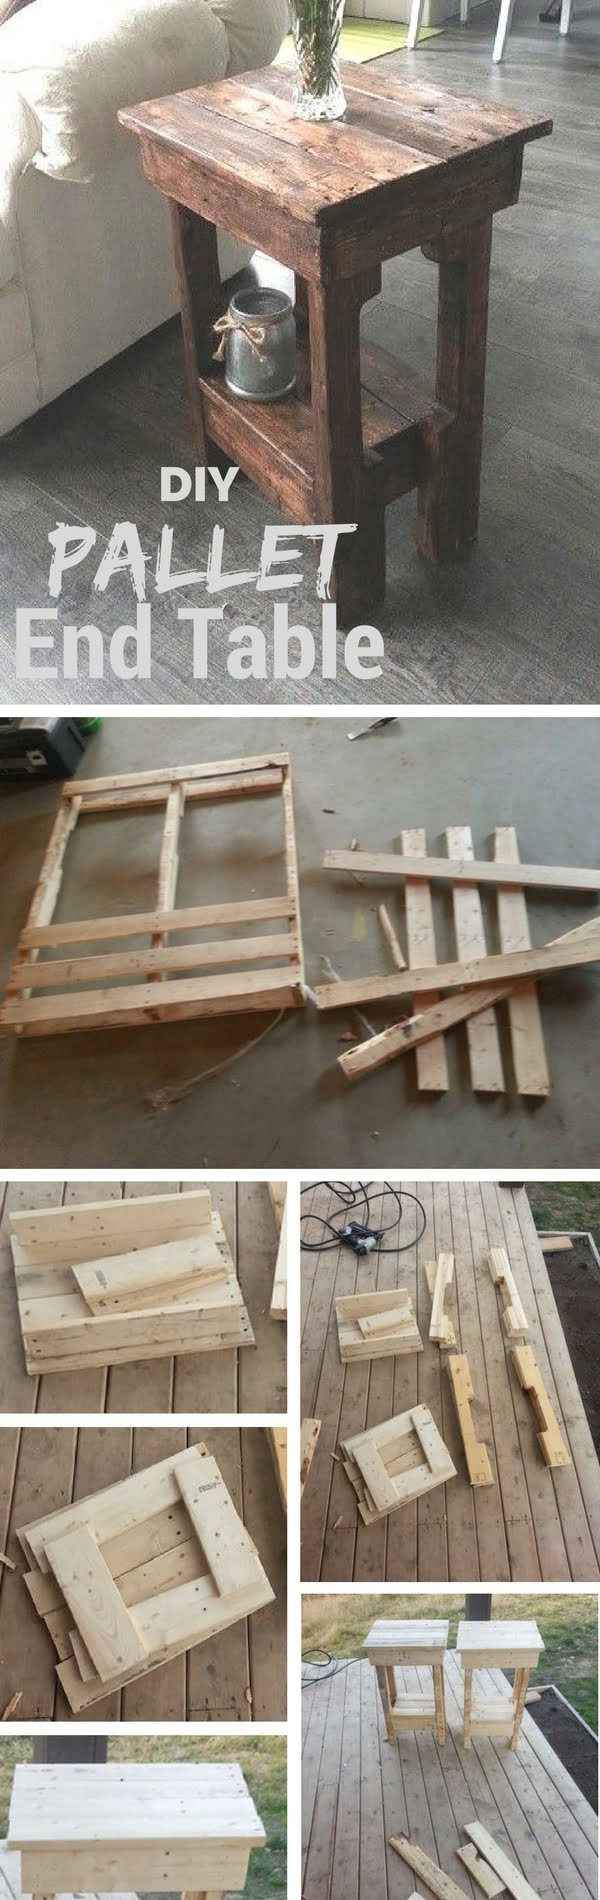 Make this easy DIY end table from pallet wood